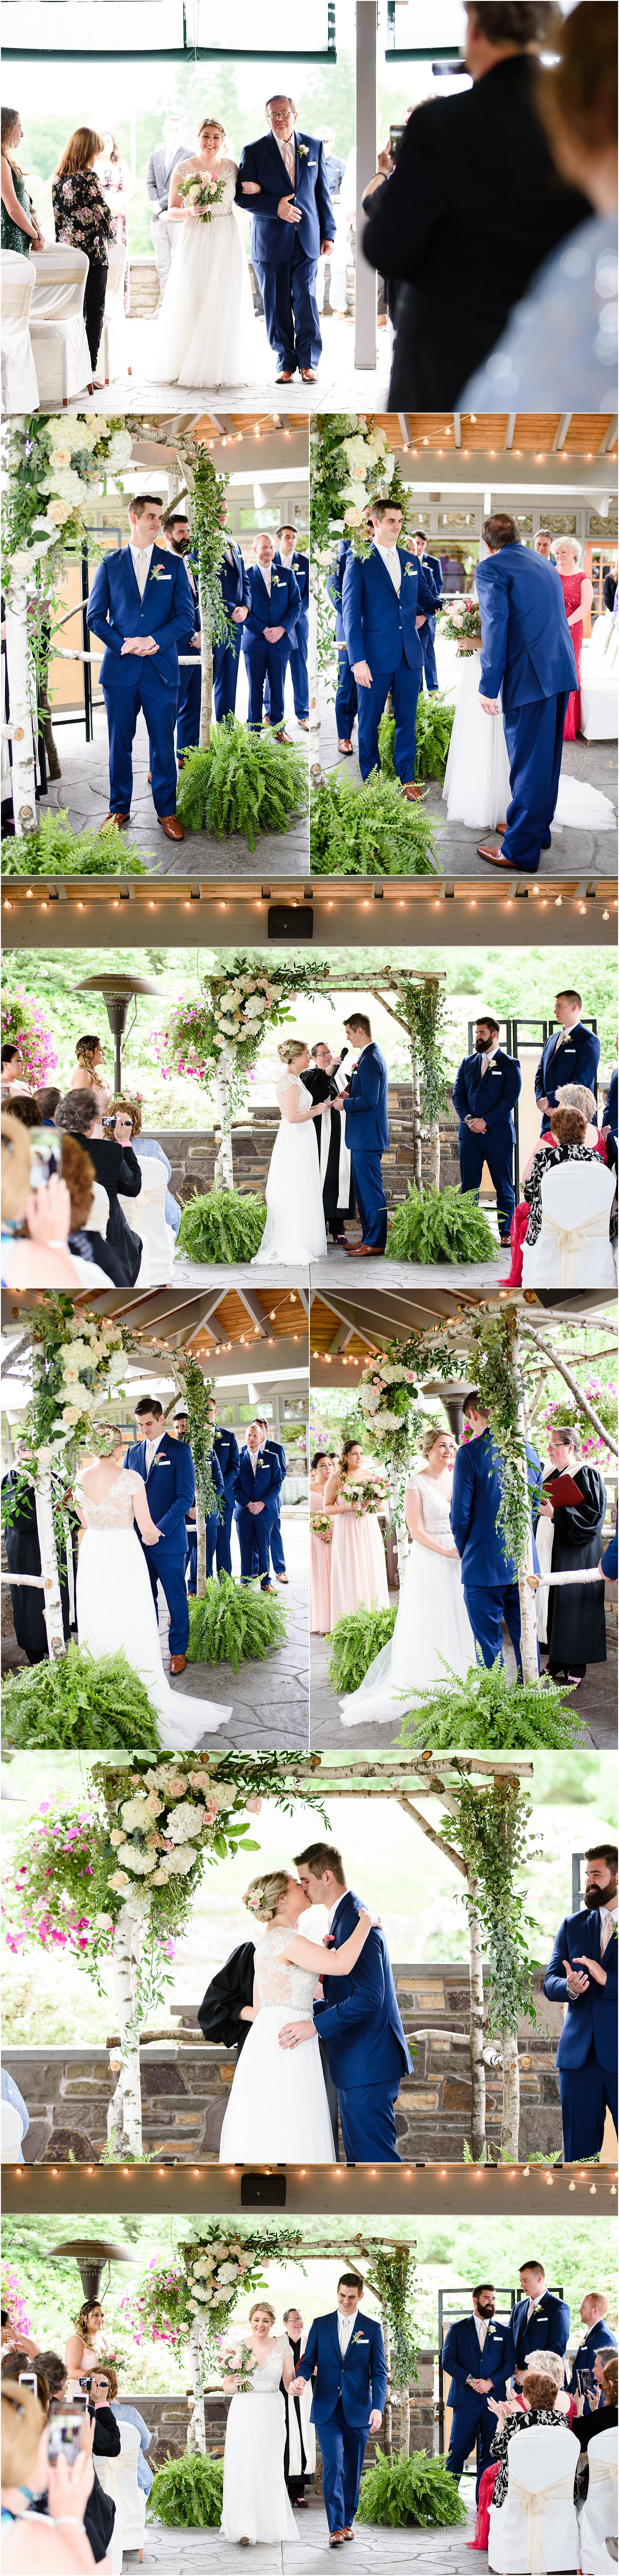 Clarks Summit PA wedding photographer Crystal Satriano photographs a ceremony at Glen Oak Country Club